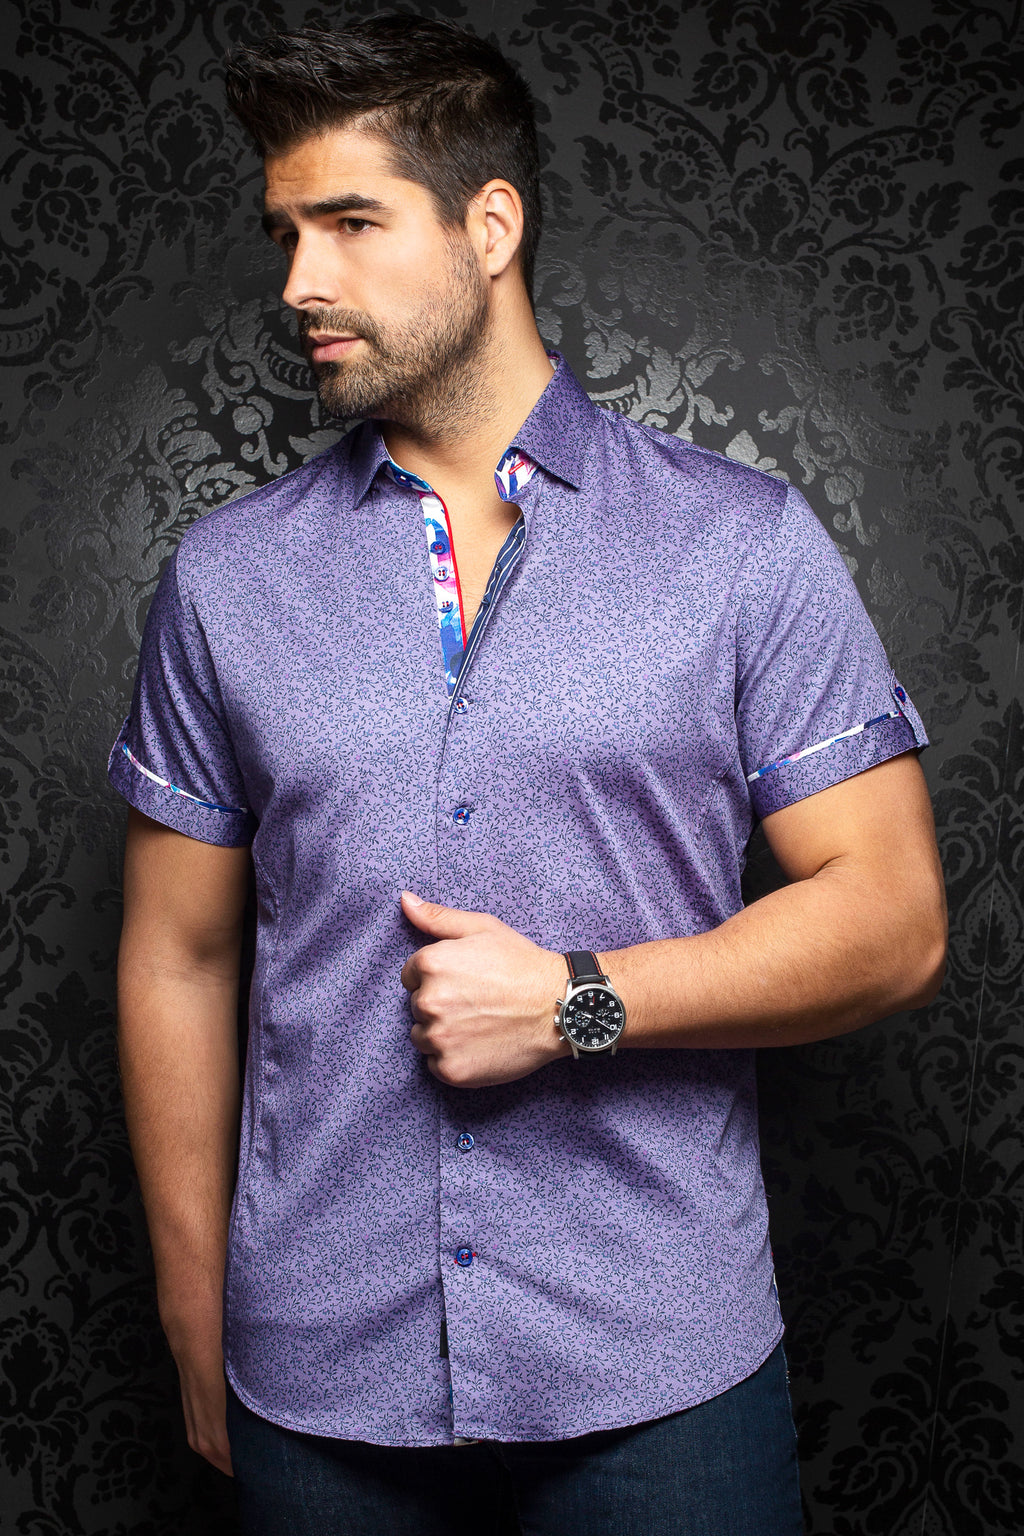 Au Noir Short-Sleeve Shirt | Zolo Purple